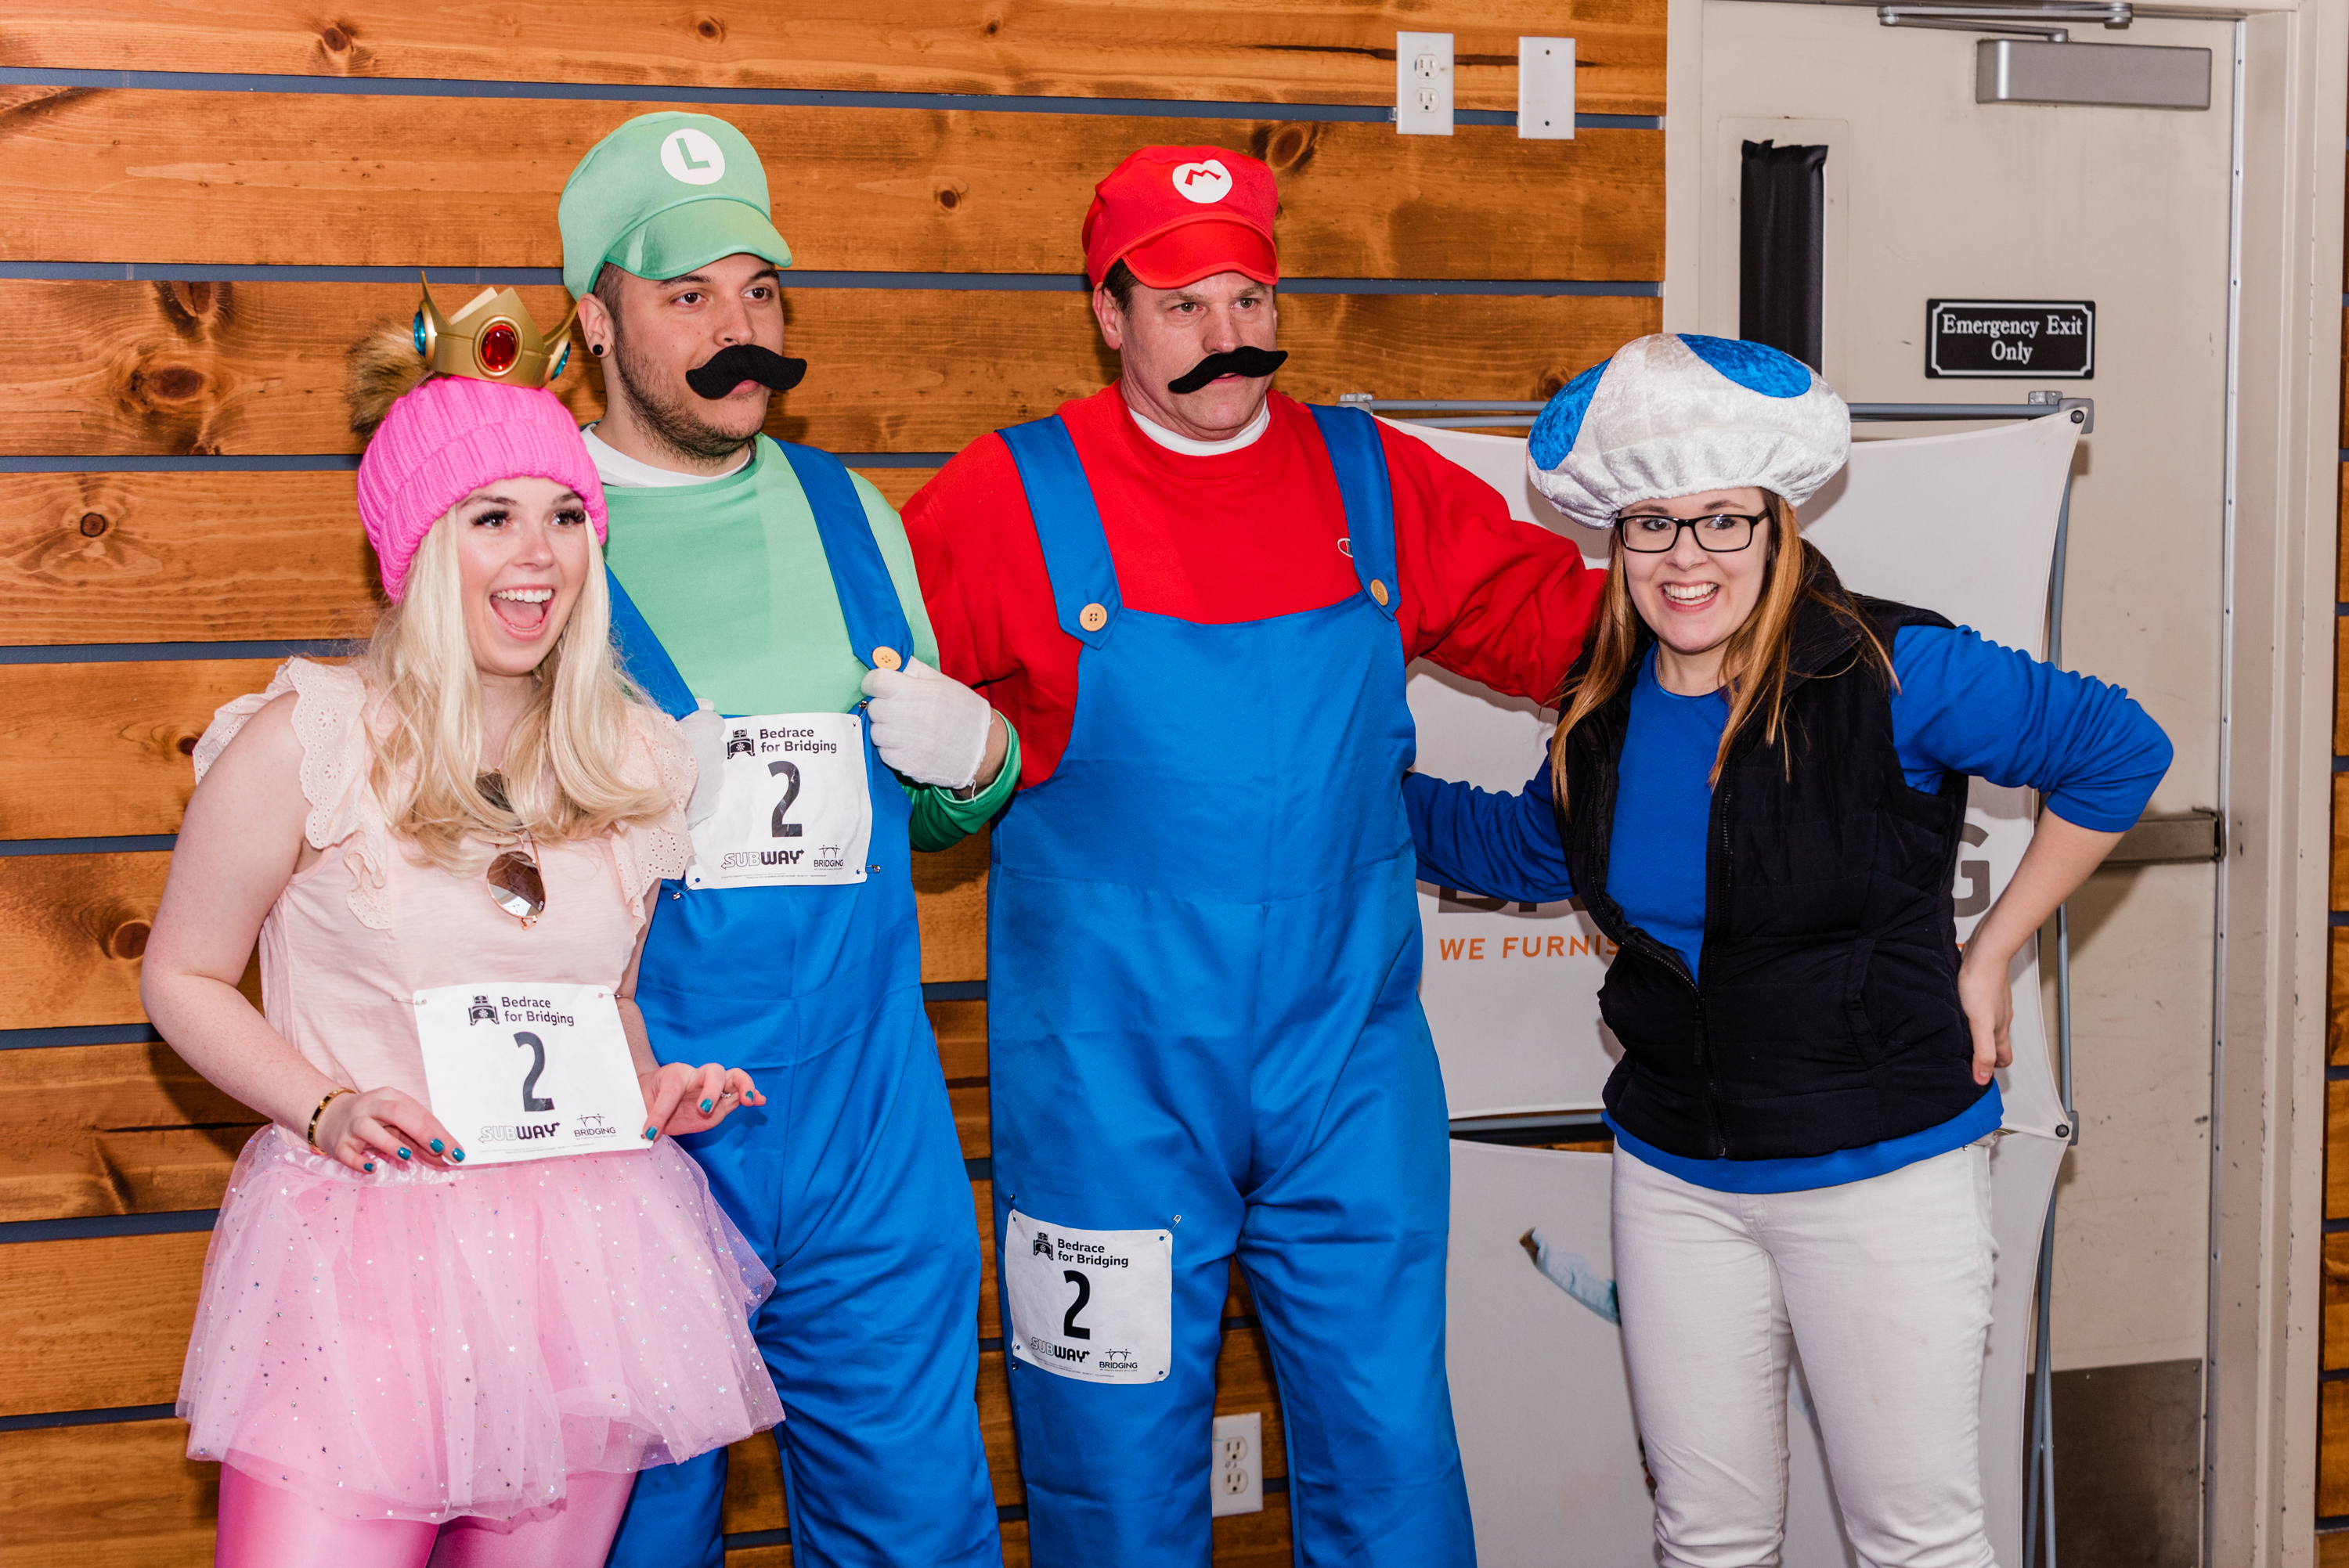 Super Mario - aka Heartland Woodlands team